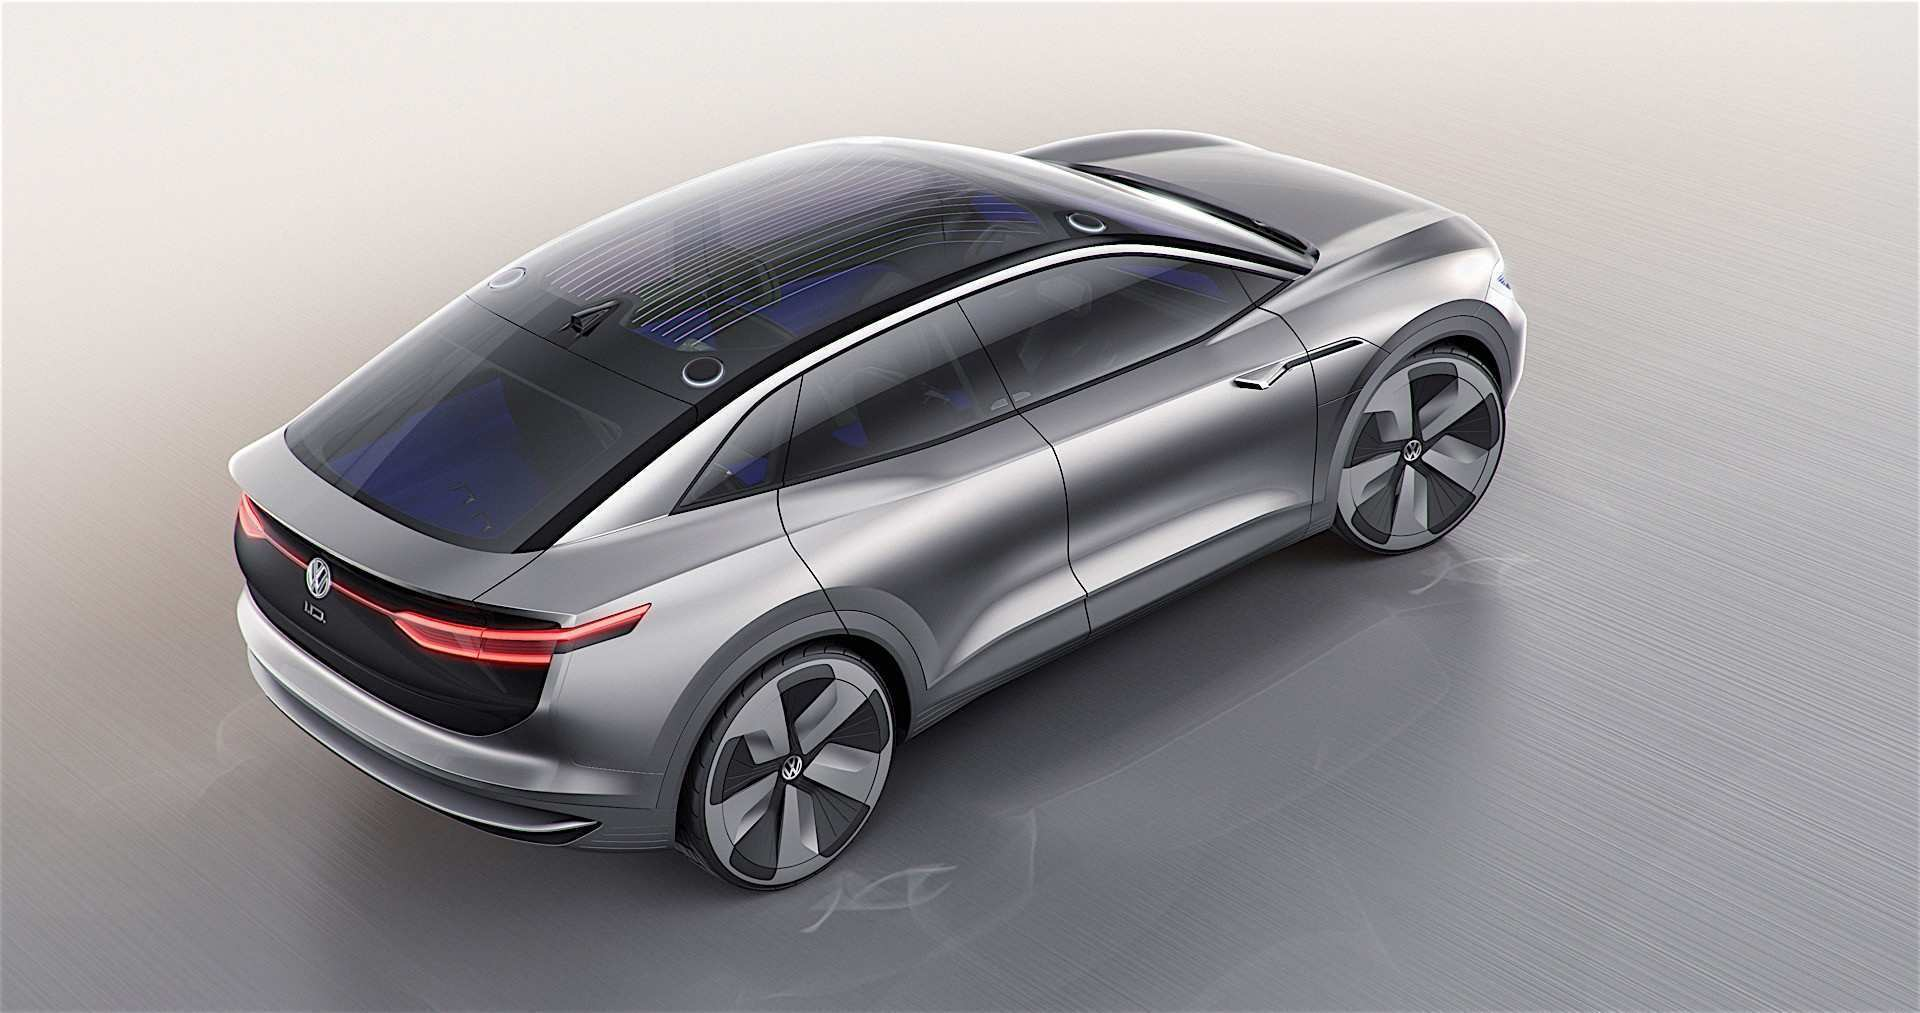 29 New Crossover Volkswagen 2019 Concept Prices for Crossover Volkswagen 2019 Concept